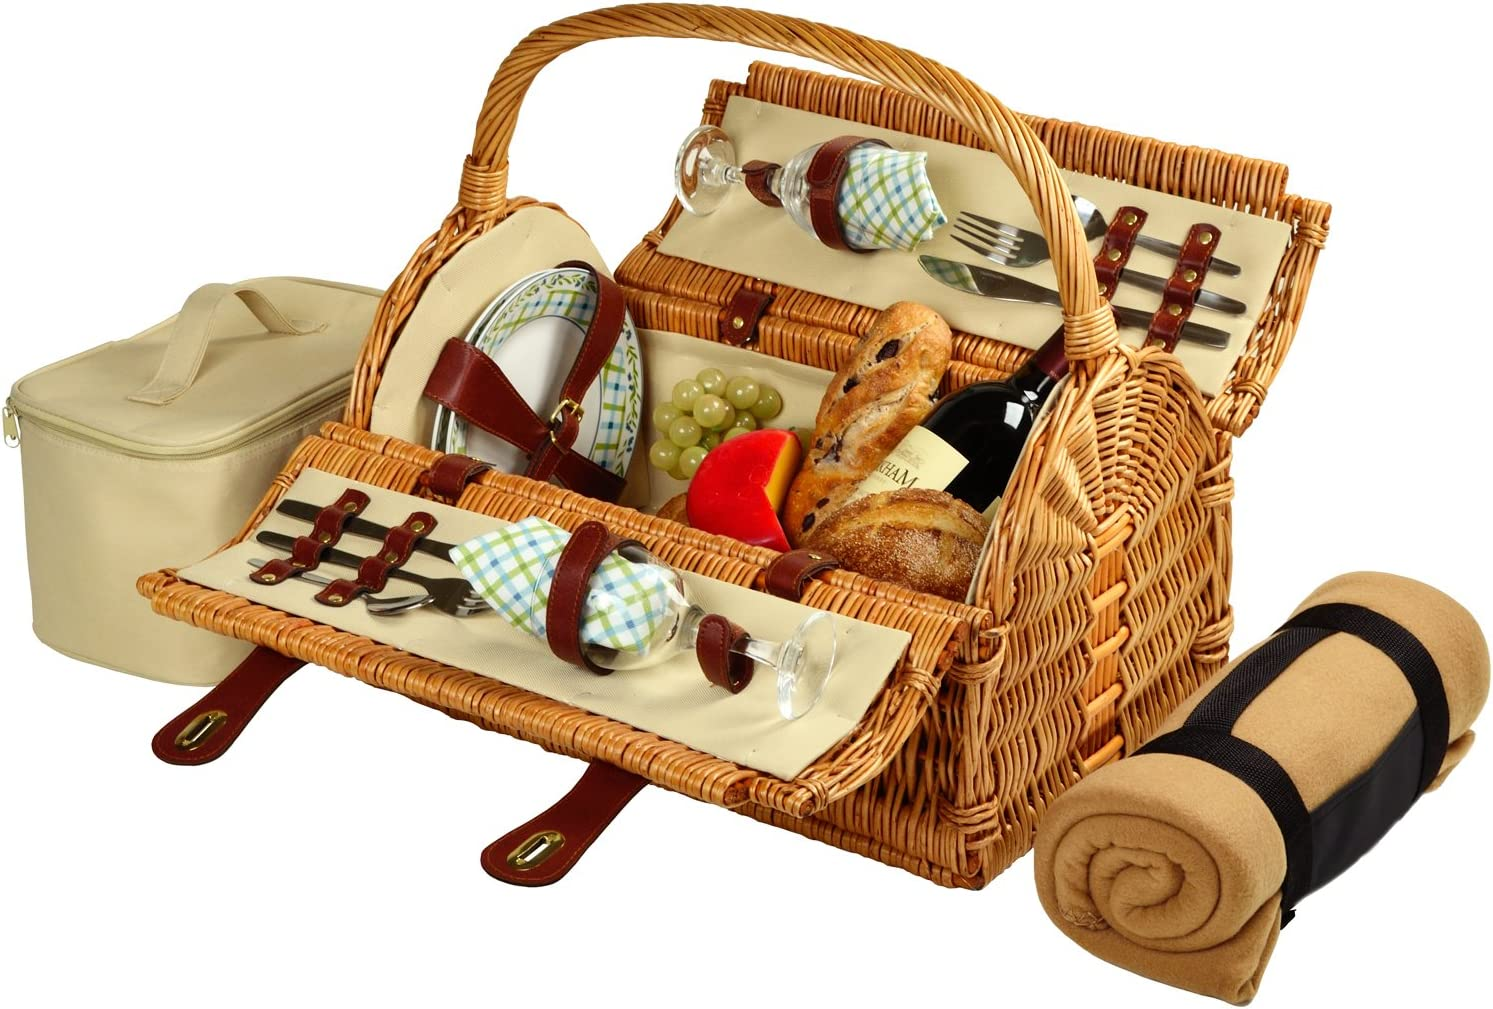 Picnic at Ascot Huntsman English-Style Willow Picnic Basket with Service for 2 and Blanket- Designed, Assembled & Quality Approved in the USA